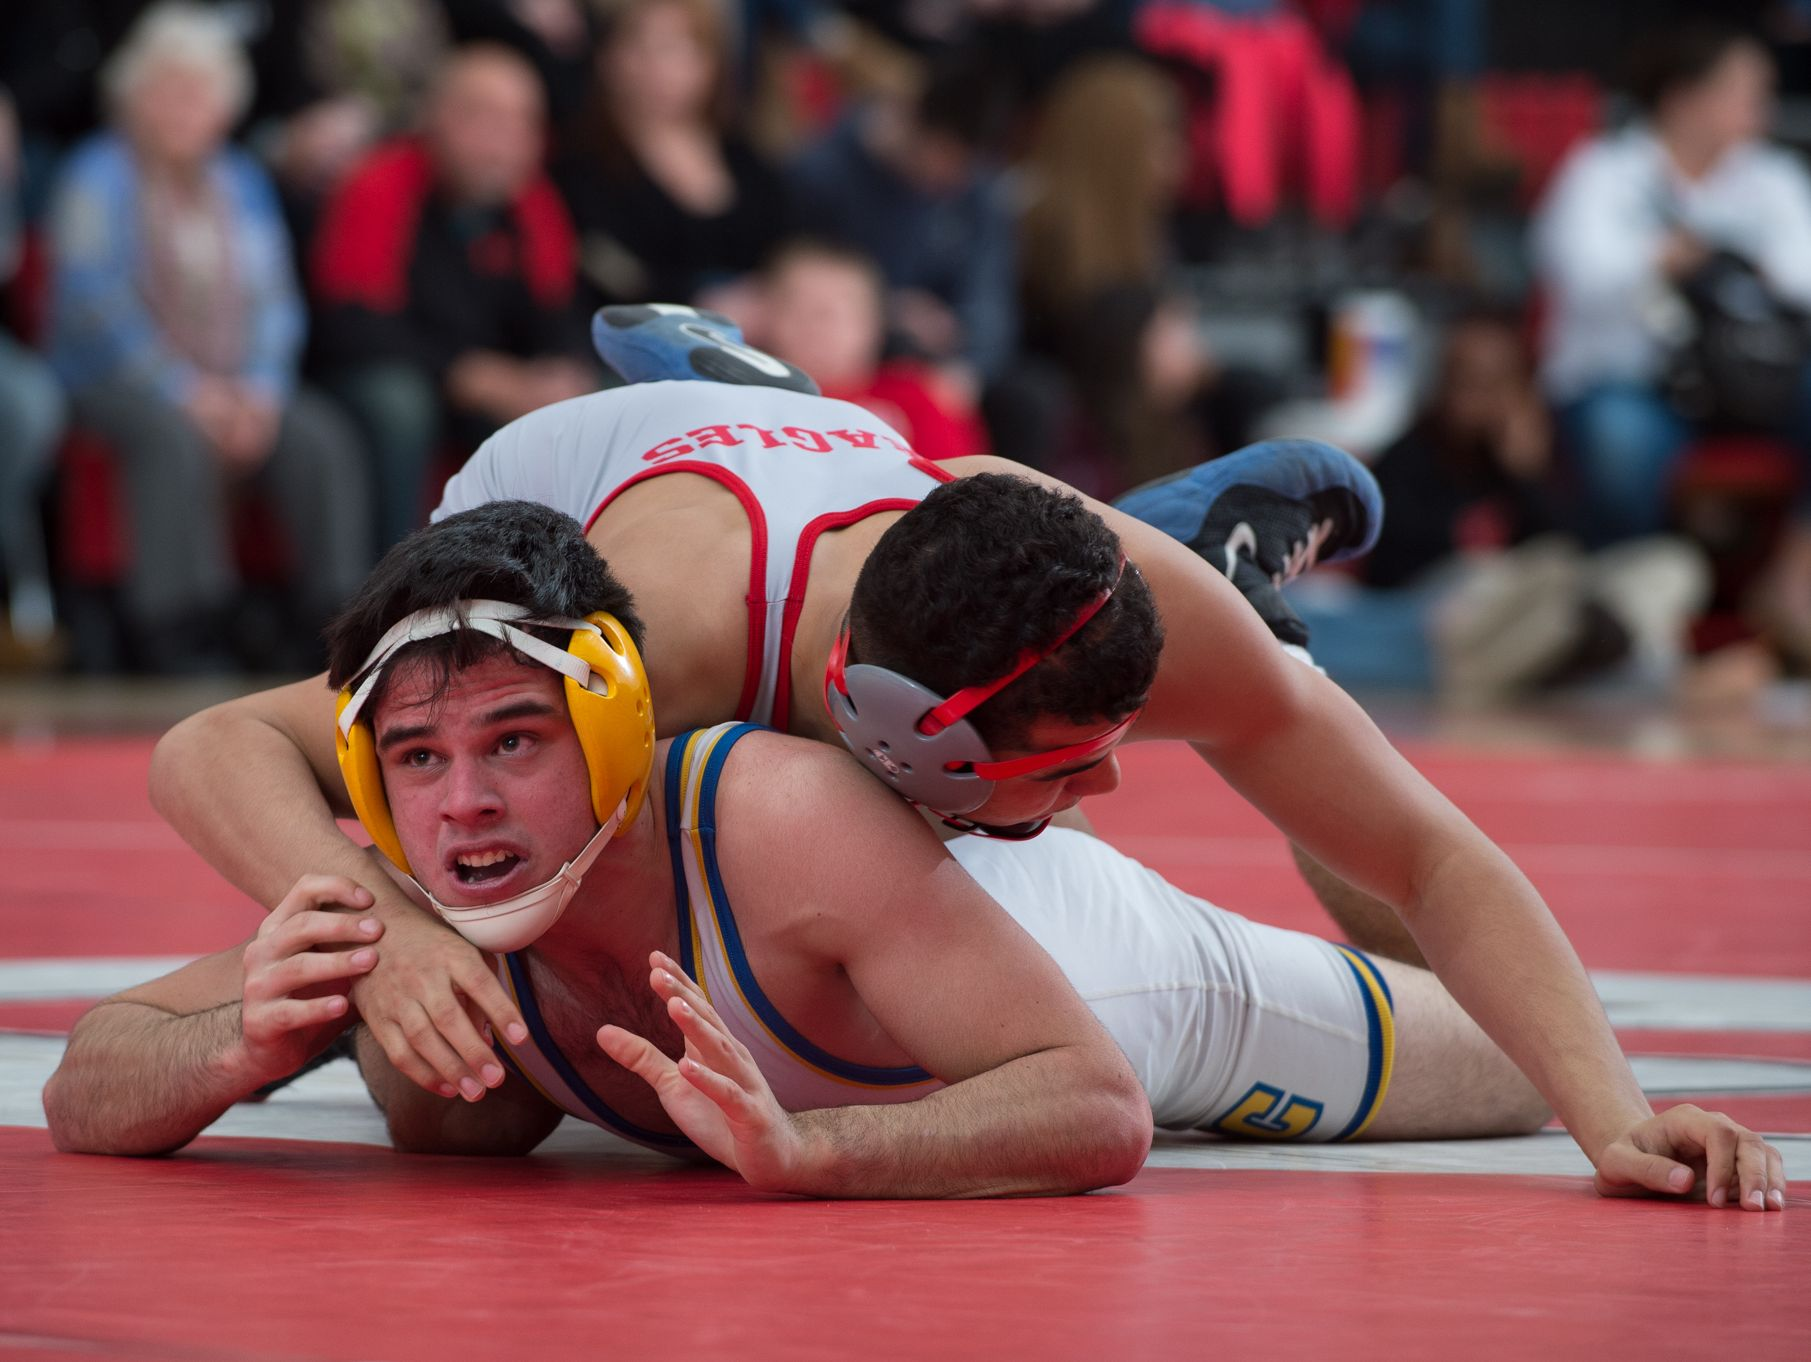 Sussex Central's Tyler Bunting, left, looks at the clock in his match against Smyrna's Nate Bryant in the 152 pound match at Smyrna High School. Smyrna defeated Sussex Central 39-27.